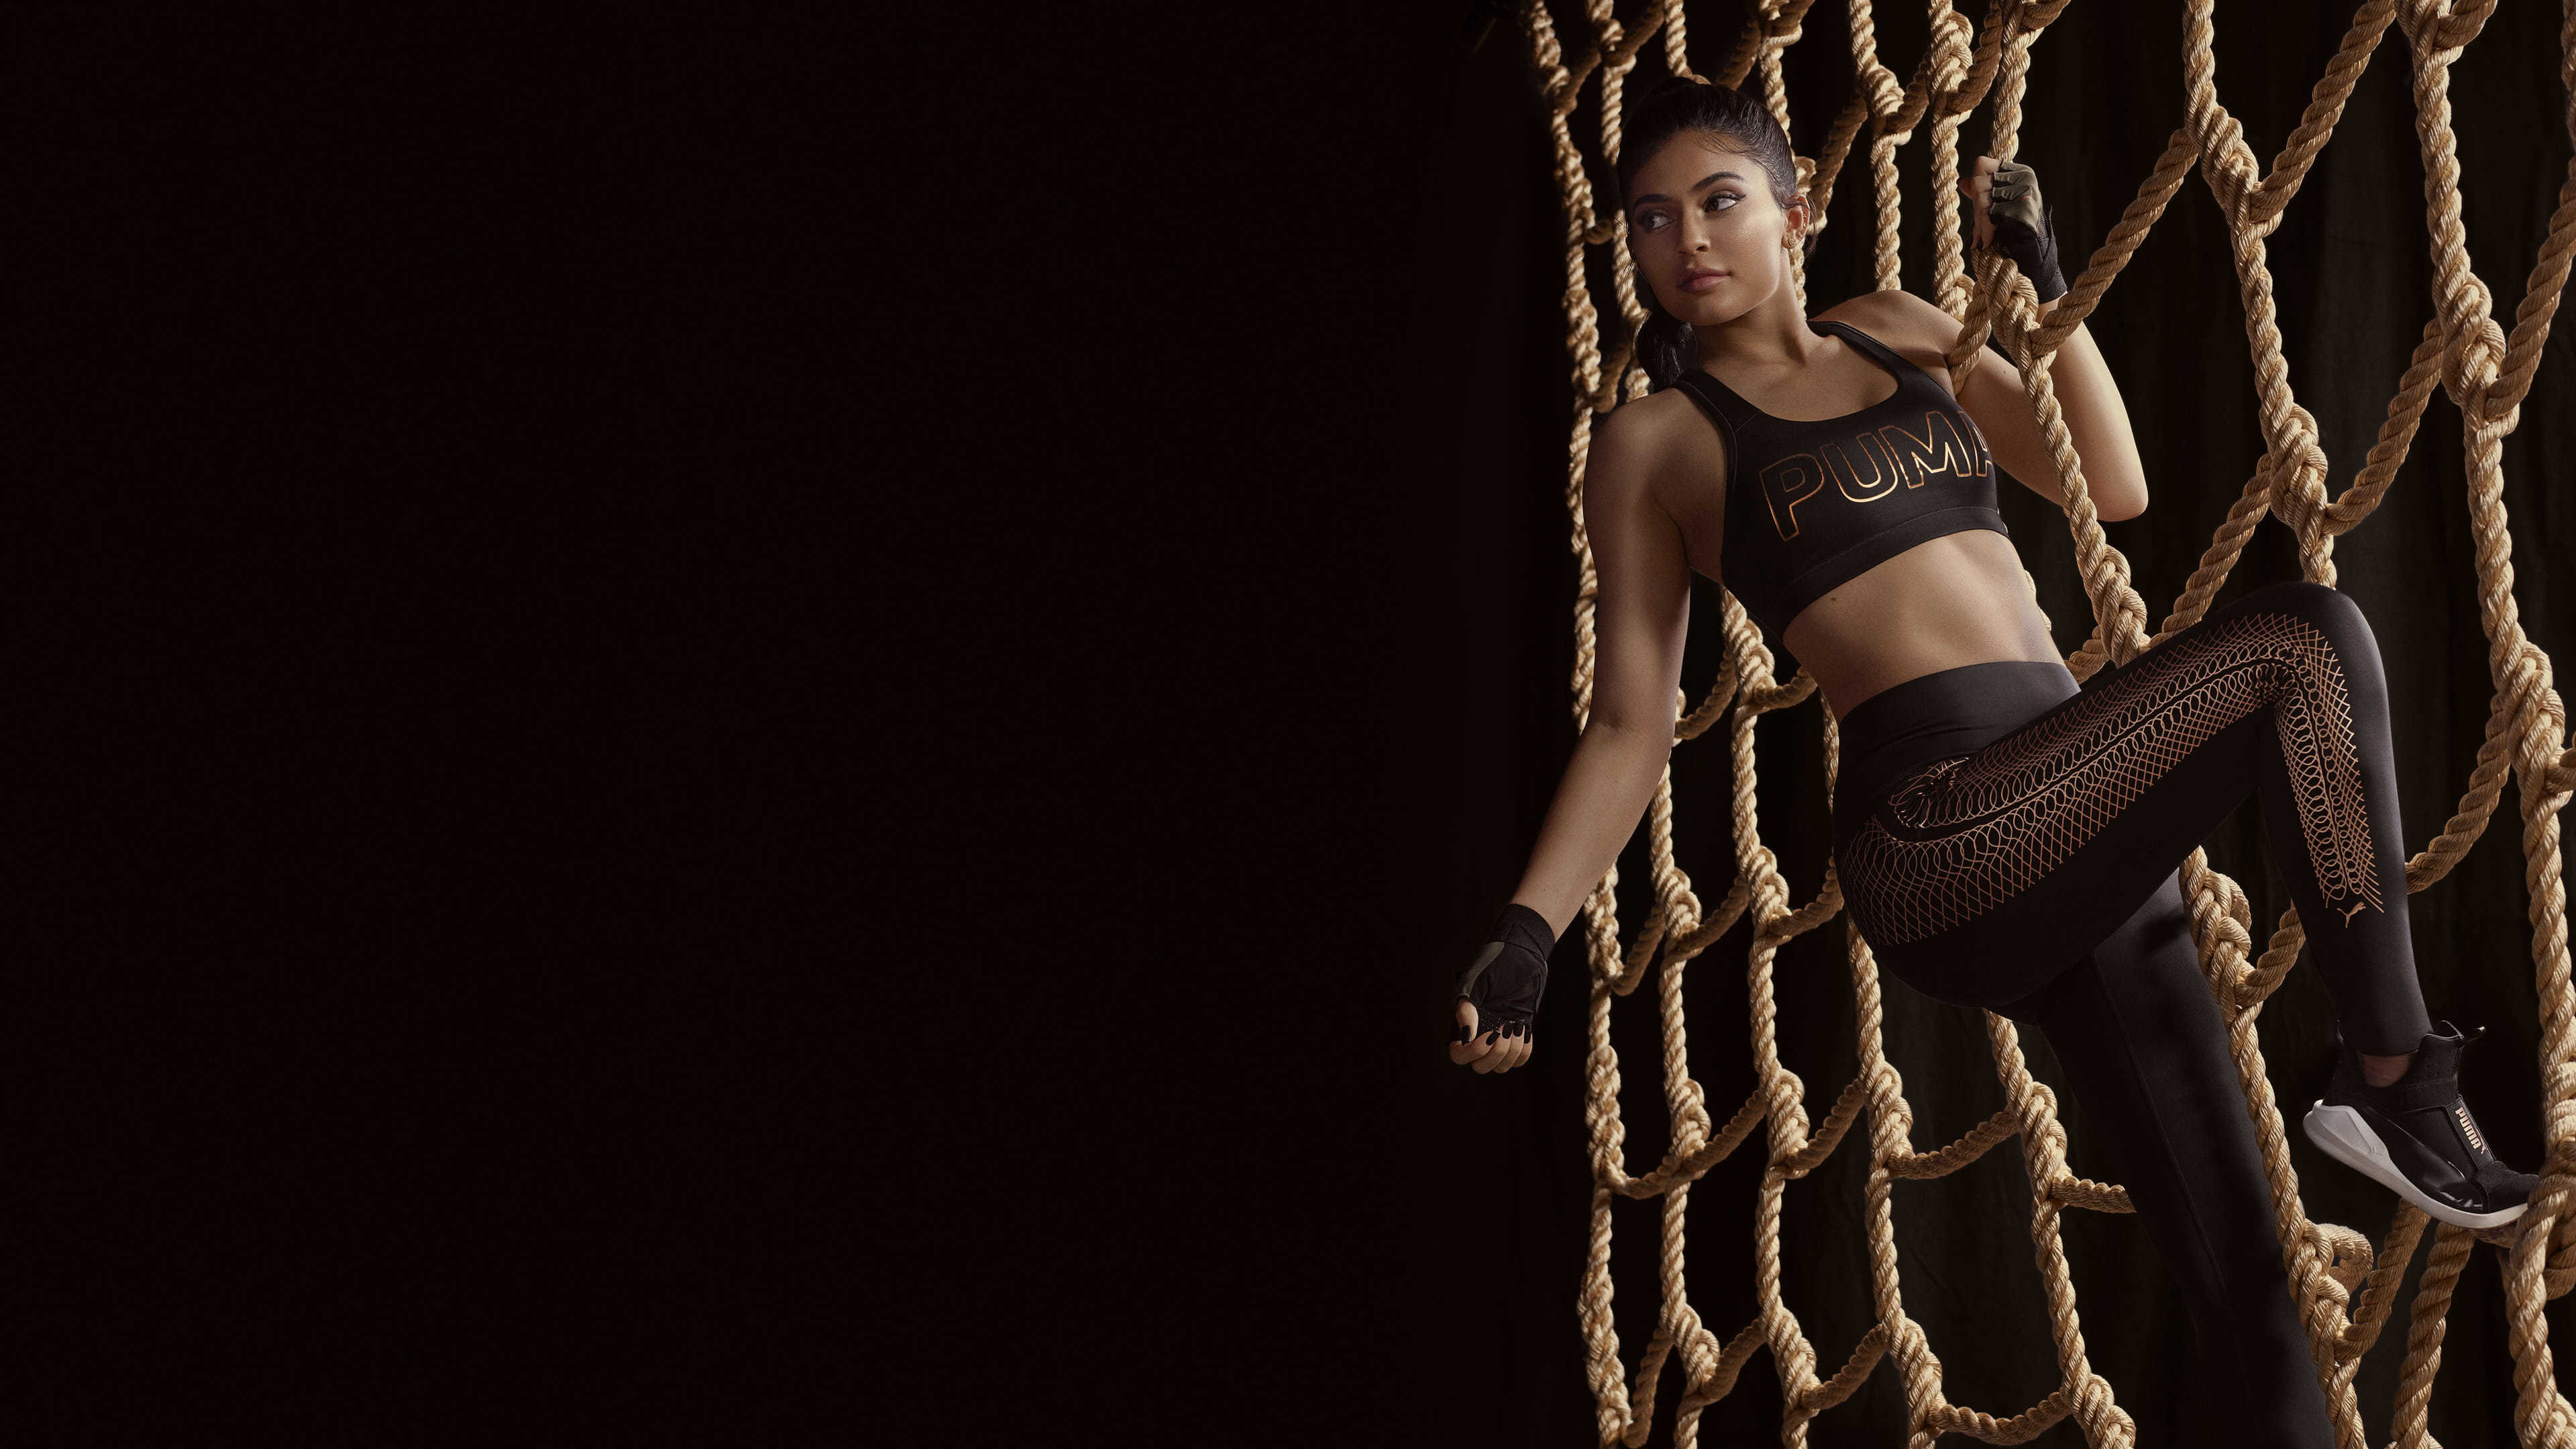 kylie jenner puma campaign velvet rope collection uhd 4k wallpaper